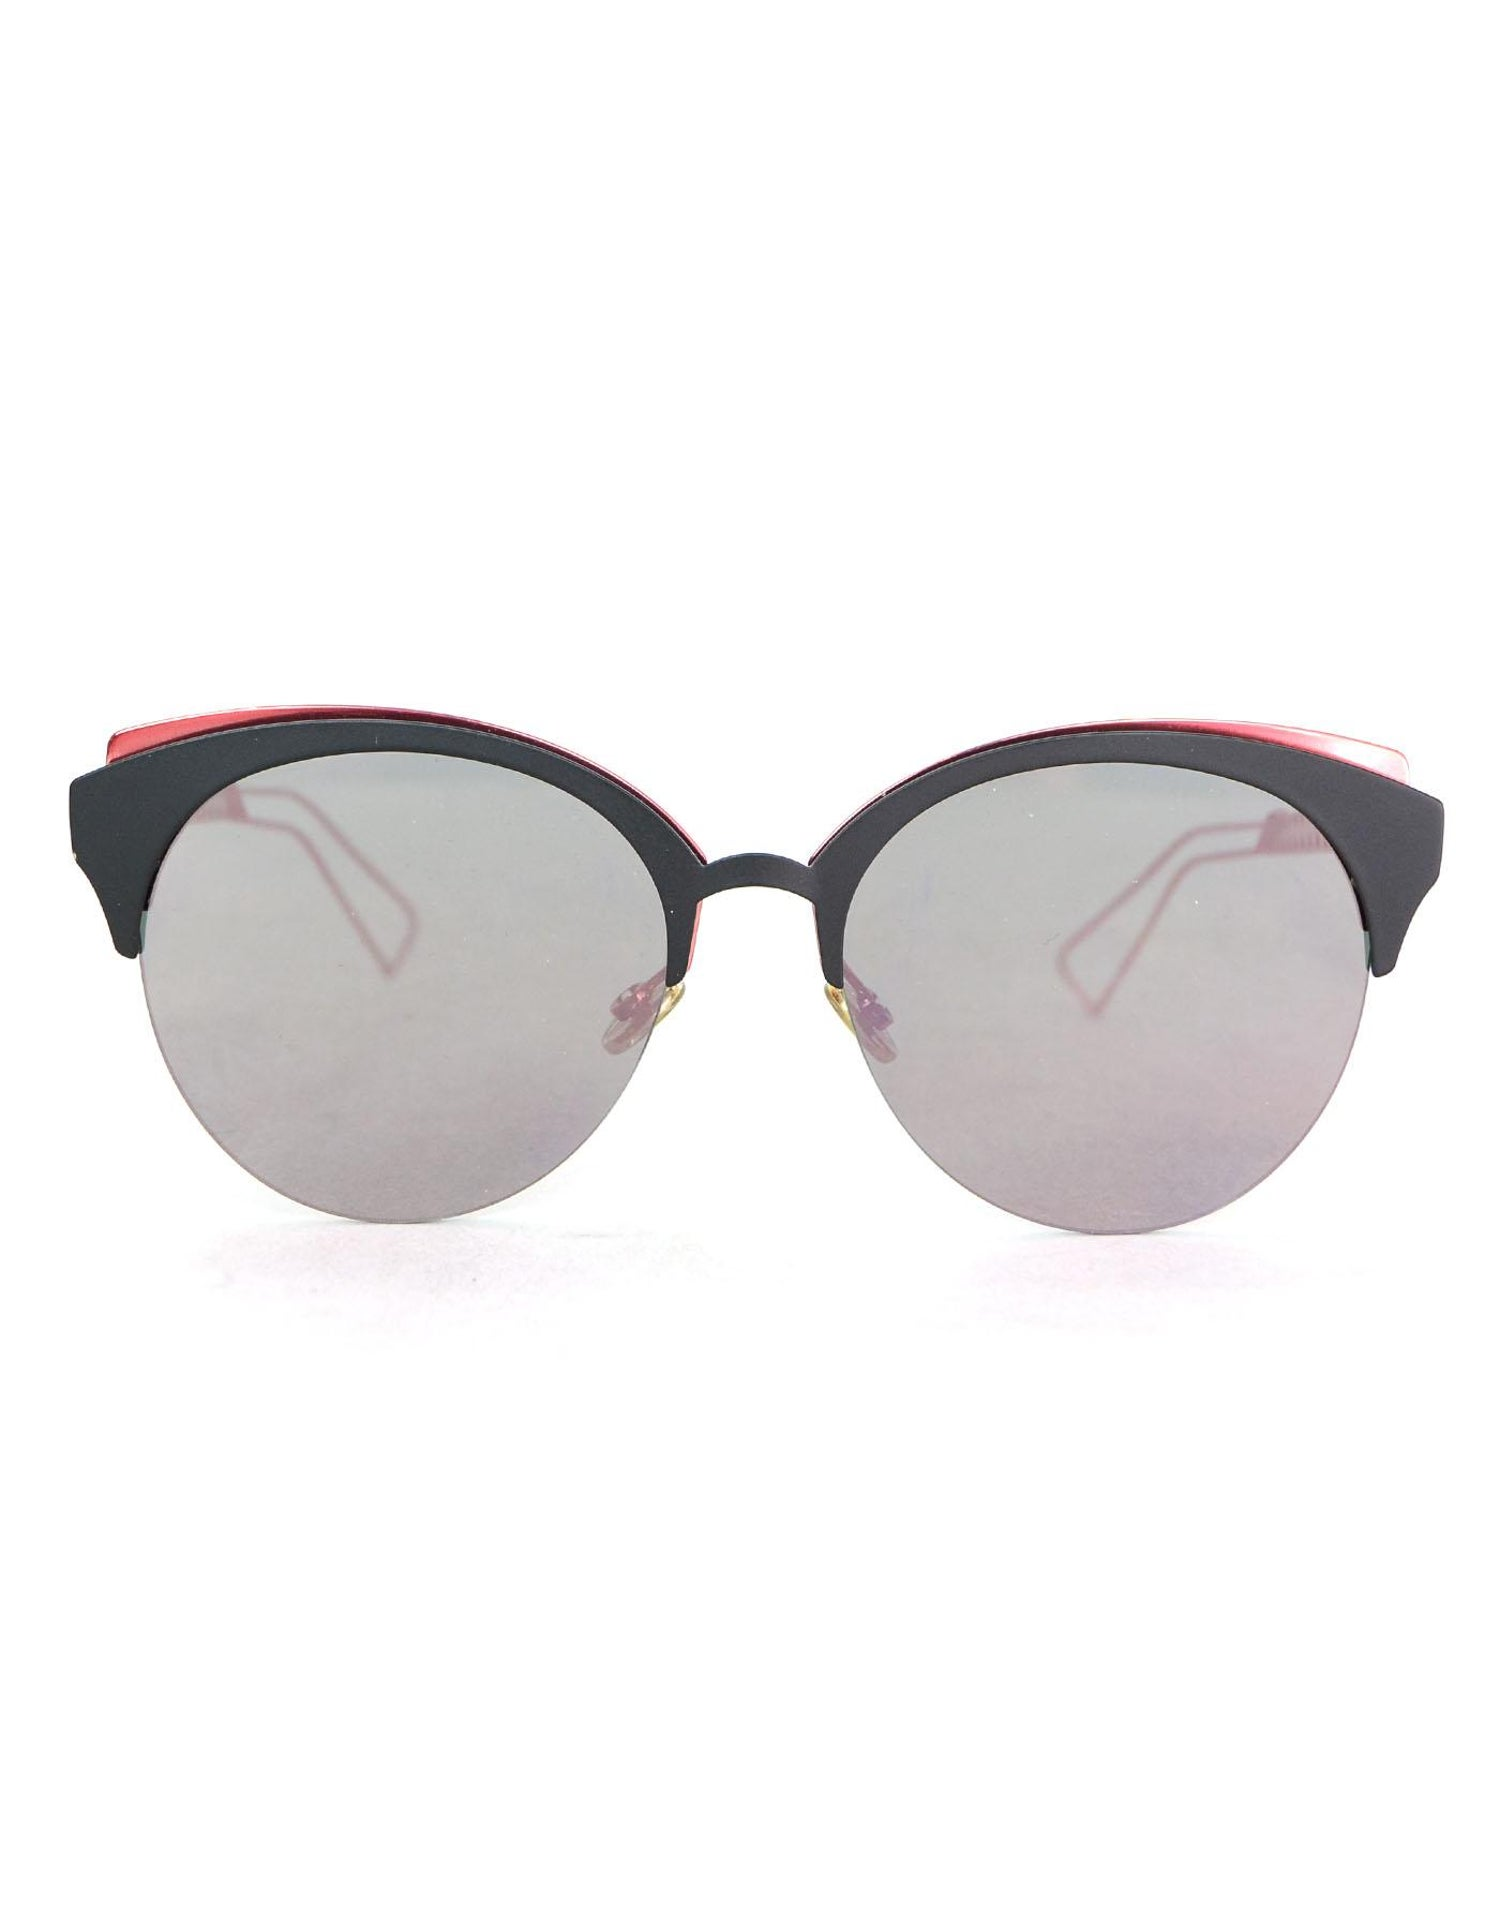 d886df7b907a Christian Dior Pink and Black Diorama Mirrored Sunglasses with Case For Sale  at 1stdibs